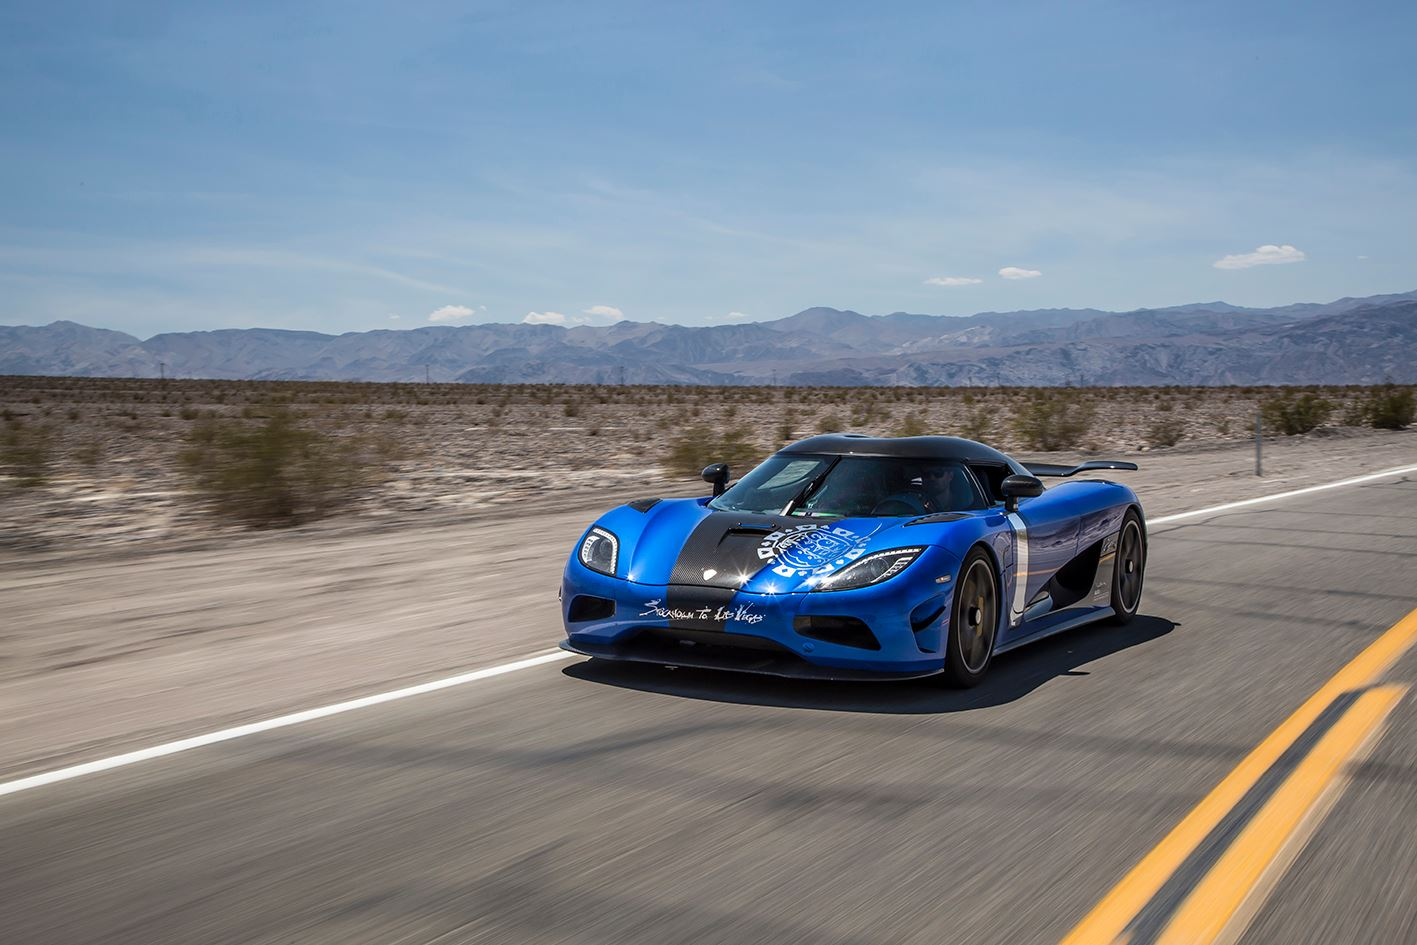 Lewis Hamilton in a Koenigsegg Agera HH at Gumball 3000